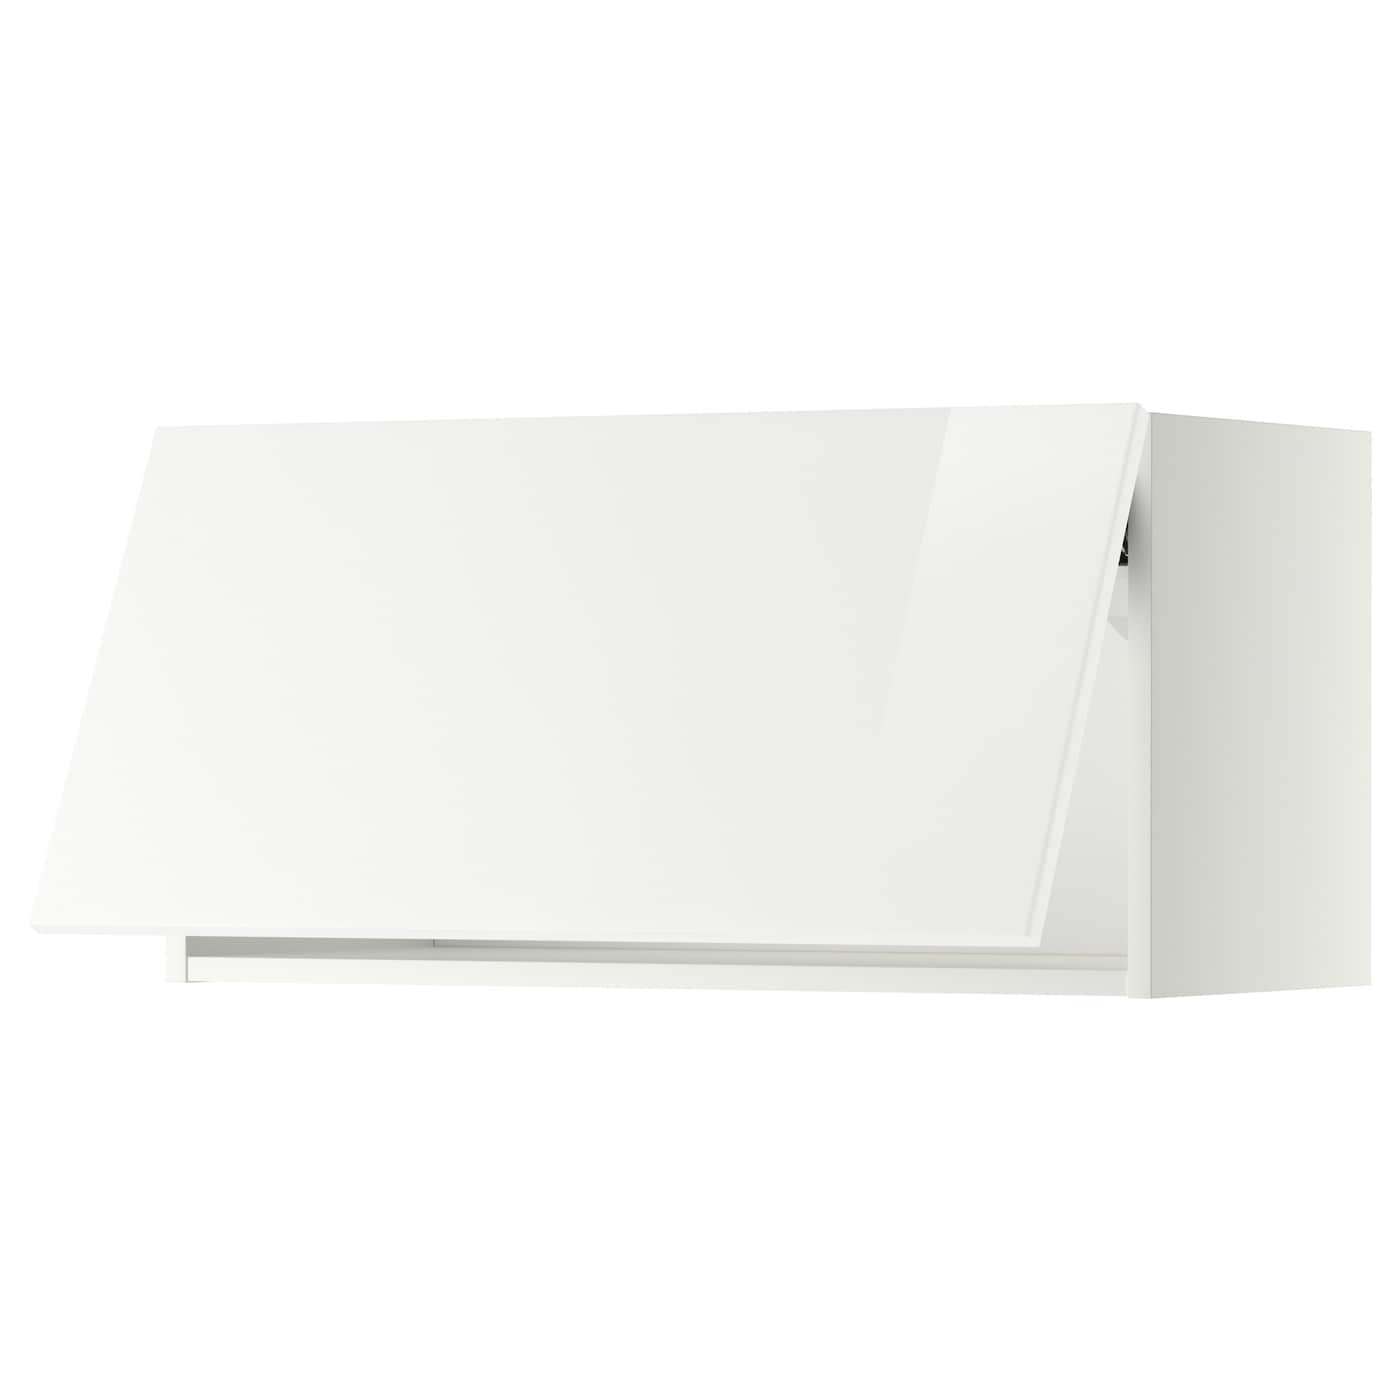 ikea horizontal kitchen cabinets metod wall cabinet horizontal white ringhult white 80 x 40 17603